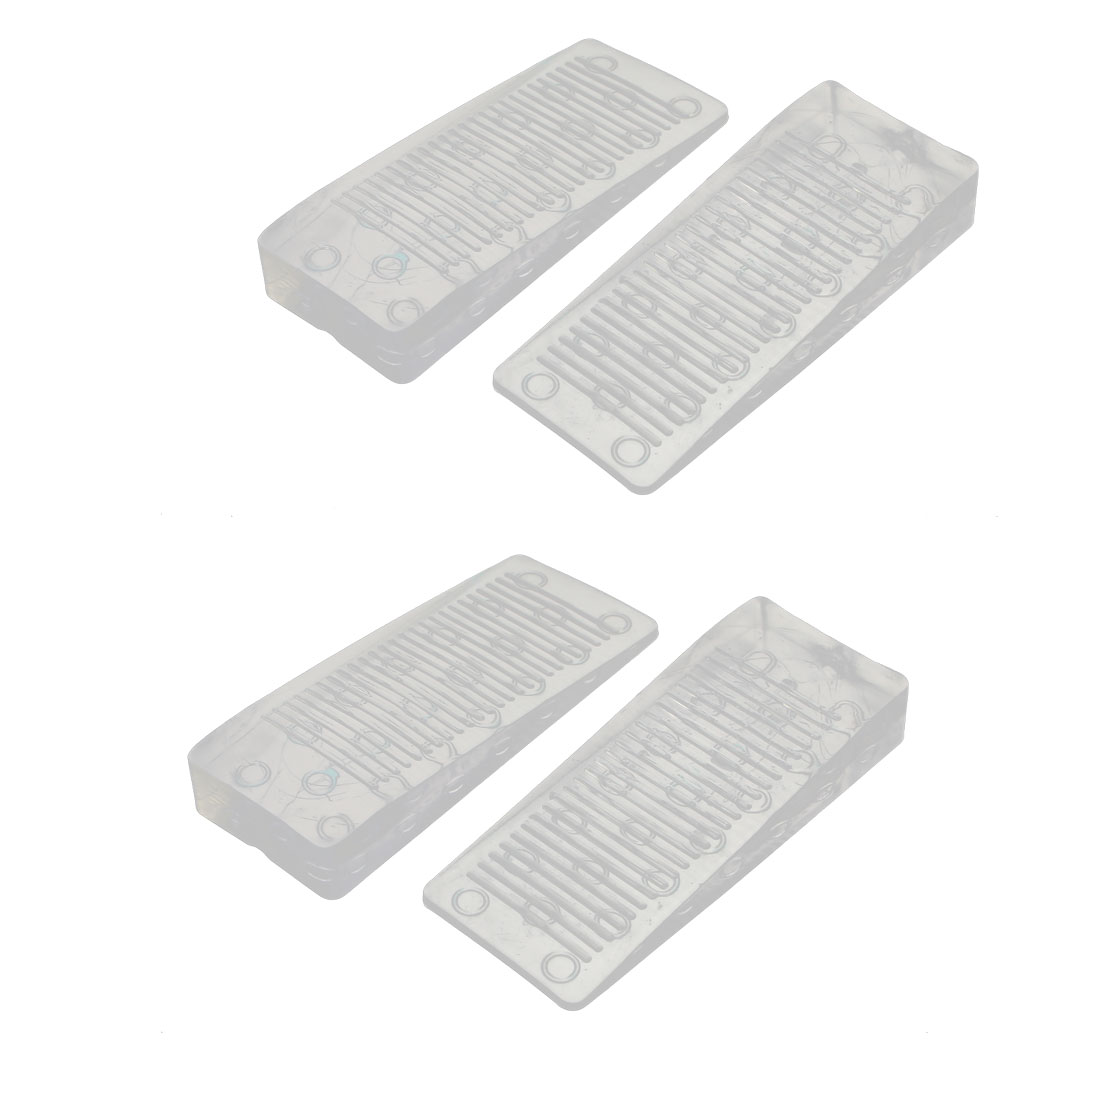 Home Office Clear Rubber Door Wedge Stopper Block 98x40x15mm 4pcs